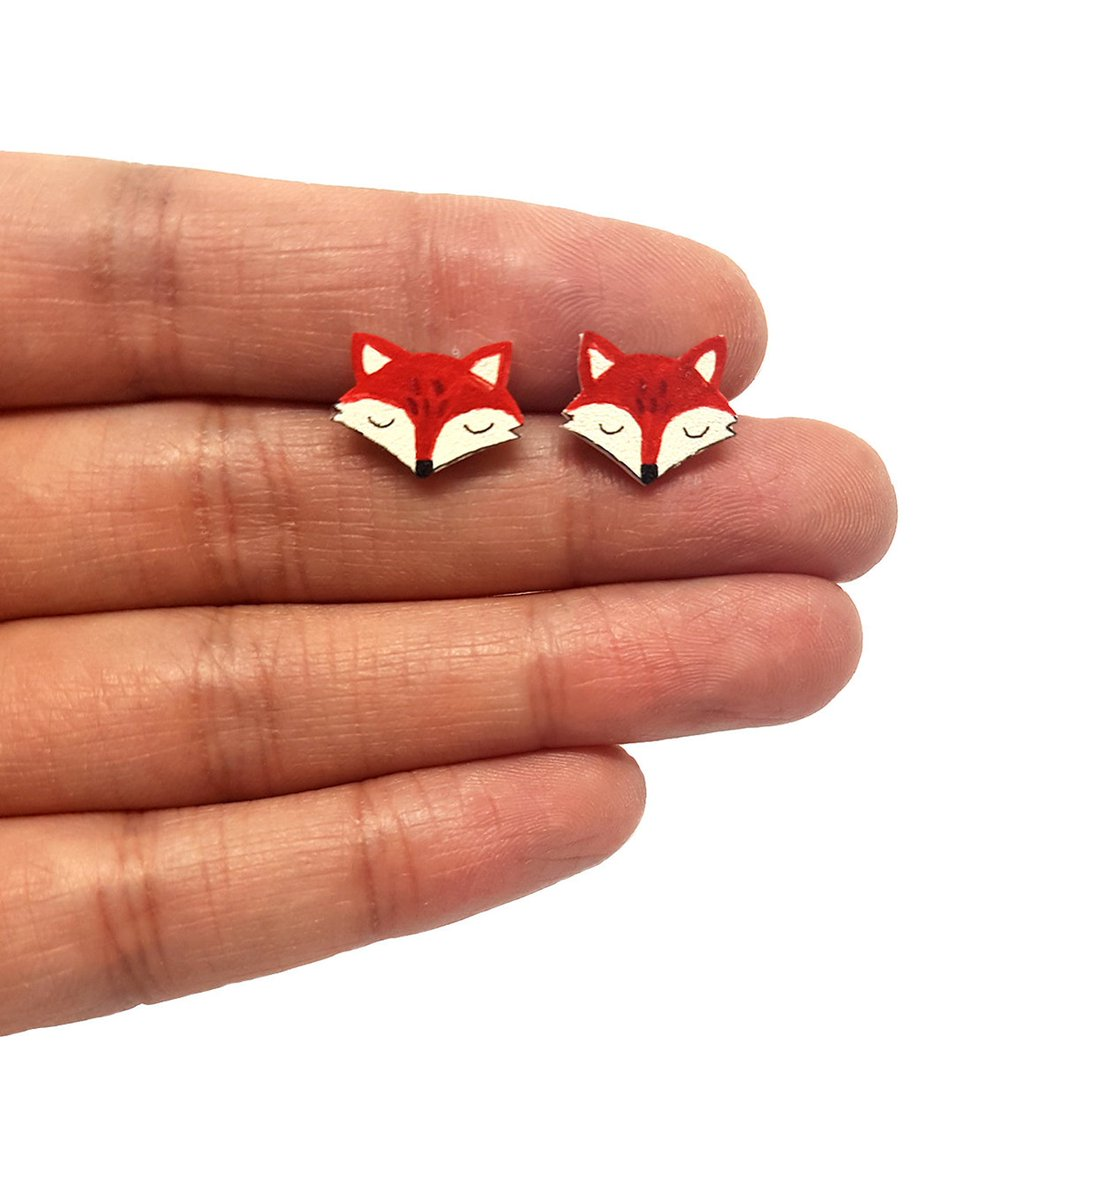 Morning #elevenseshour How are you? I am busy restocking my shop and it includes this pair of cute fox earrings! More animals in stock.  #handmade #shopsmall #etsy #wednesdaythought #SmallBusiness #jewelry #gifts #earrings #fox #animals